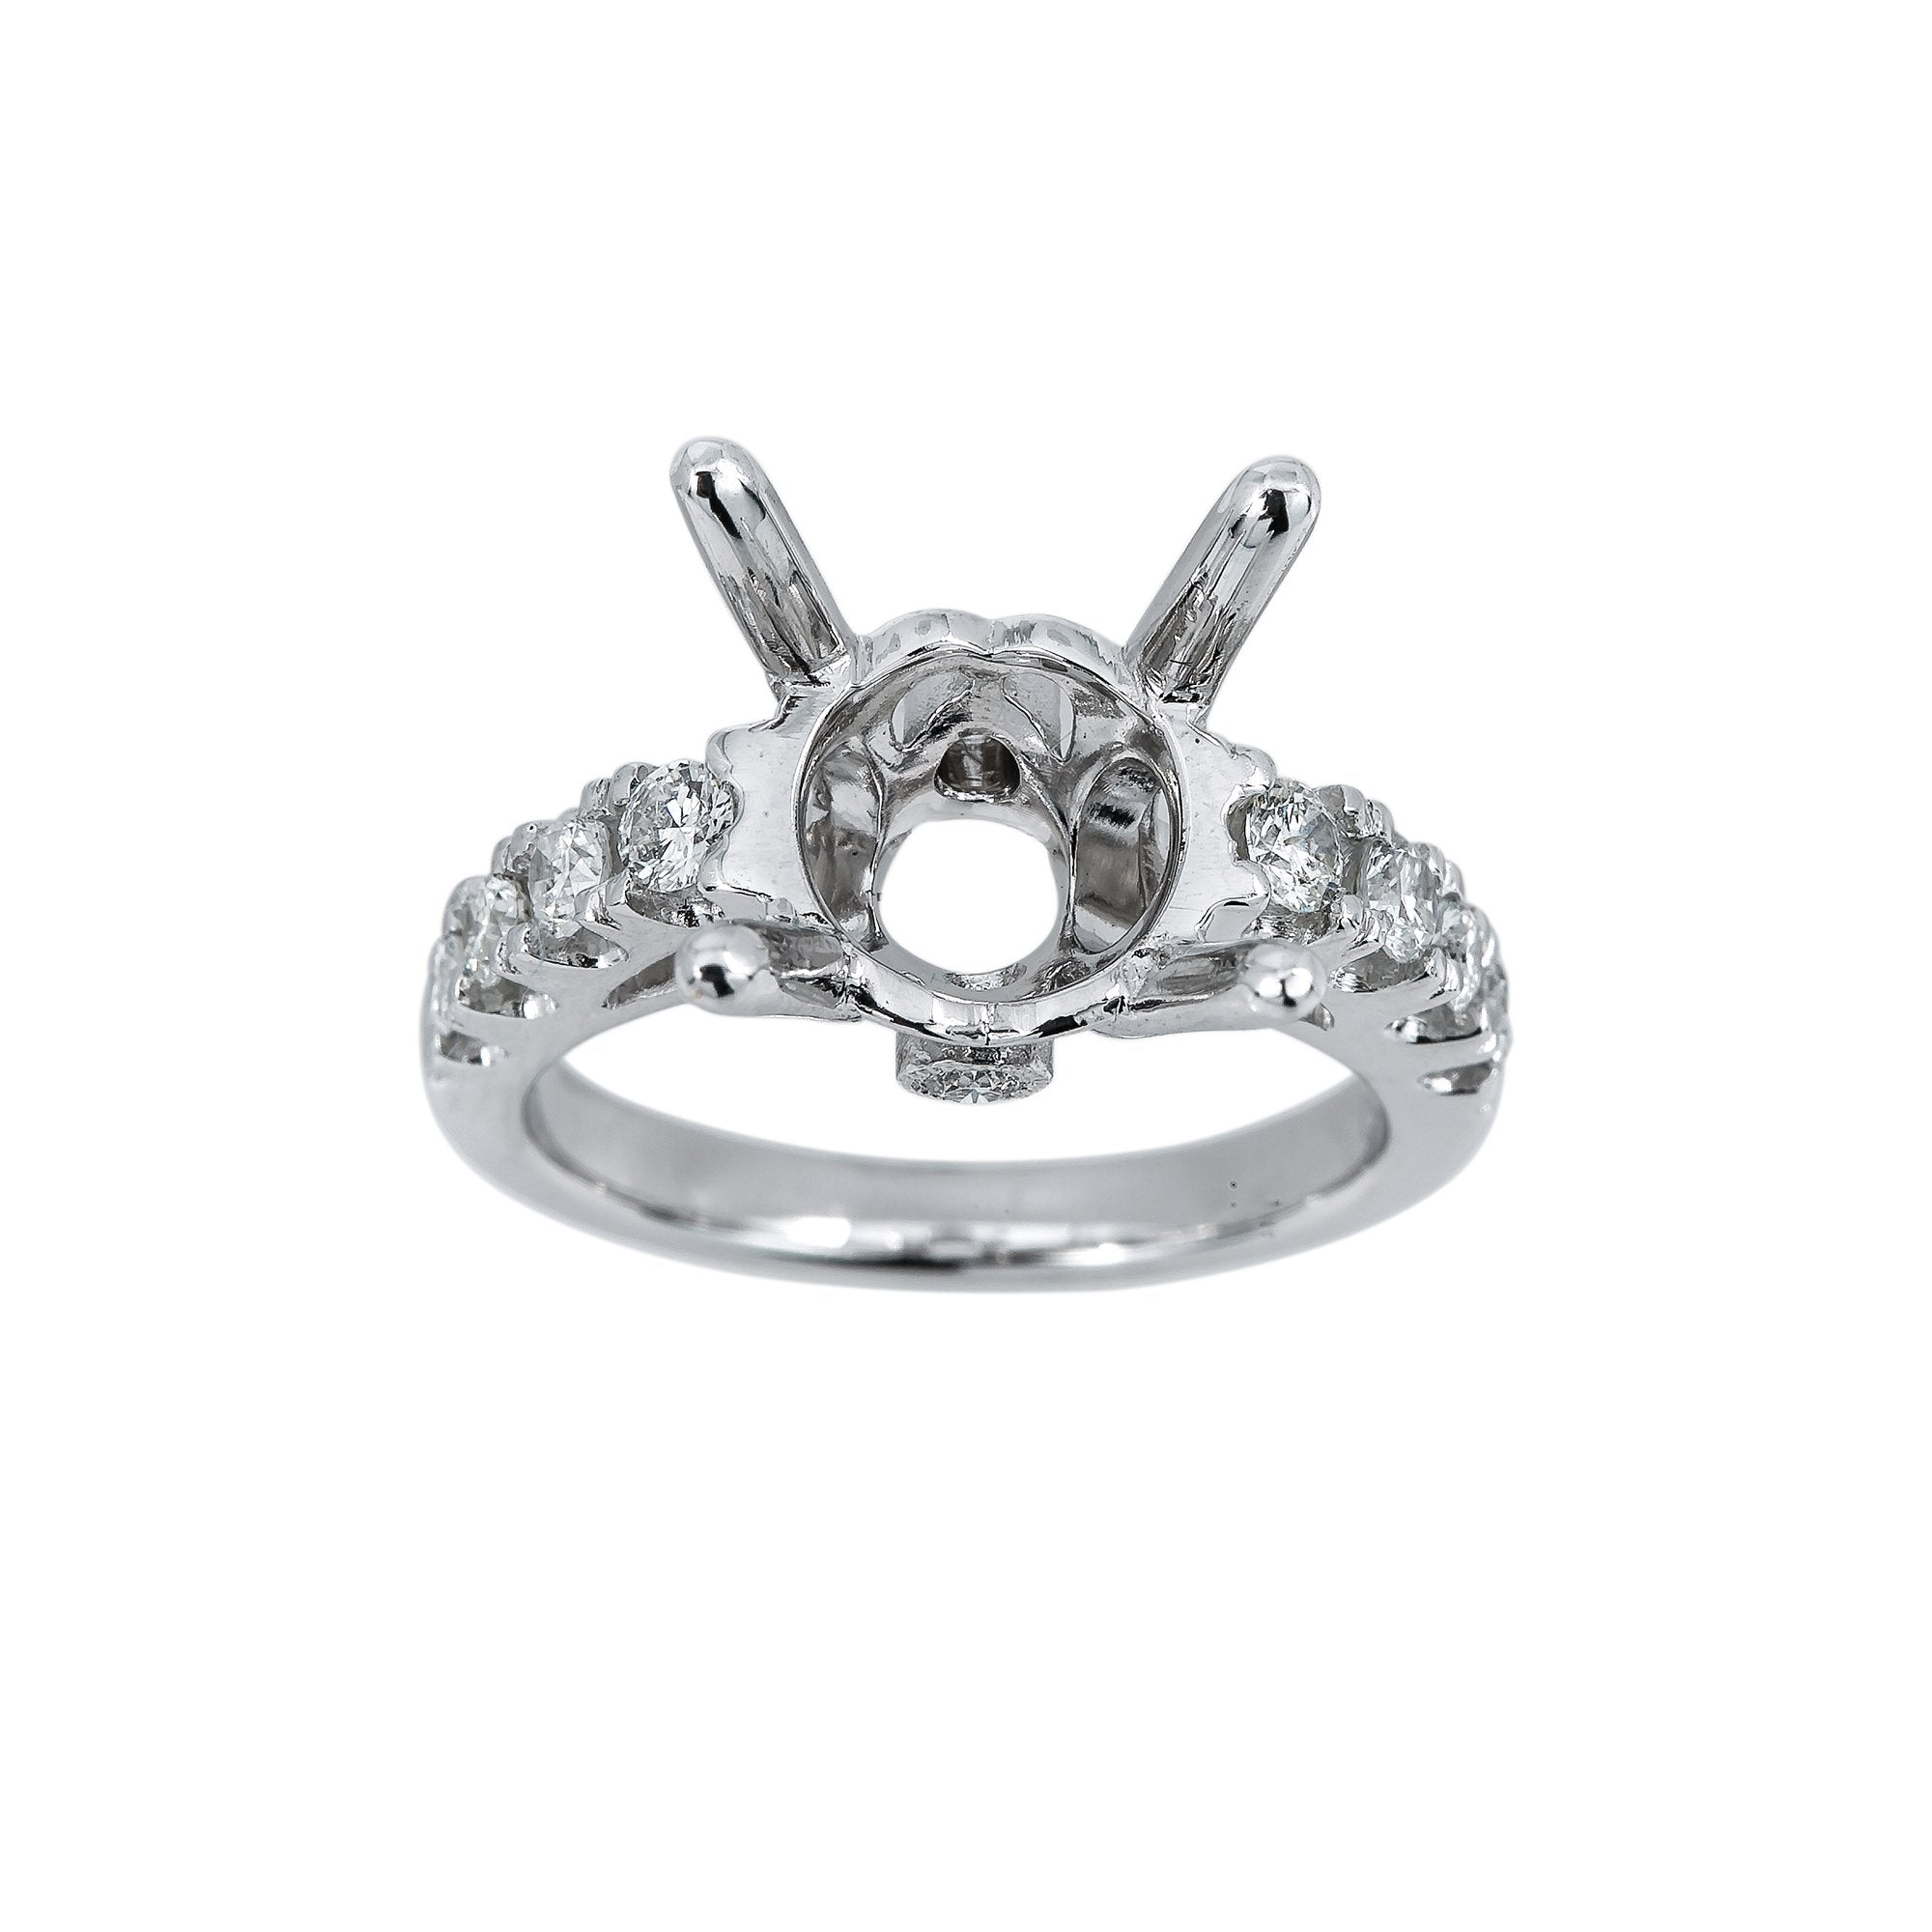 18K White Gold BJ7348R3 Women's Ring With 0.56 CT Diamonds